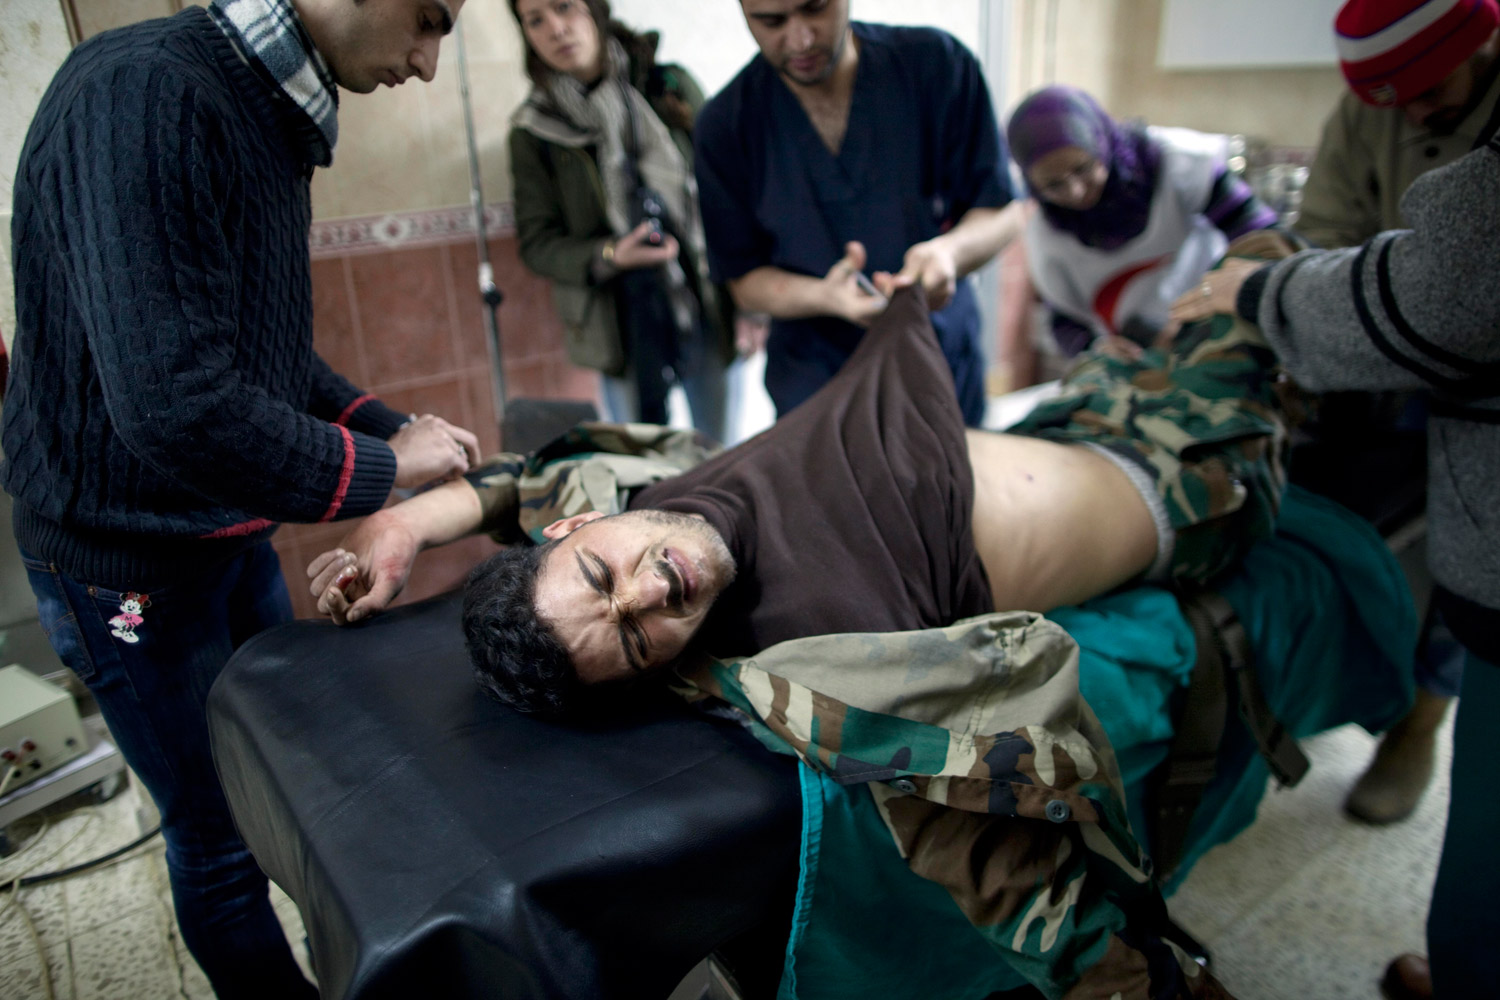 March 10, 2012. A Free Syrian Army fighter is treated by doctors after being injured during fighting against government troops in Idlib, Syria.